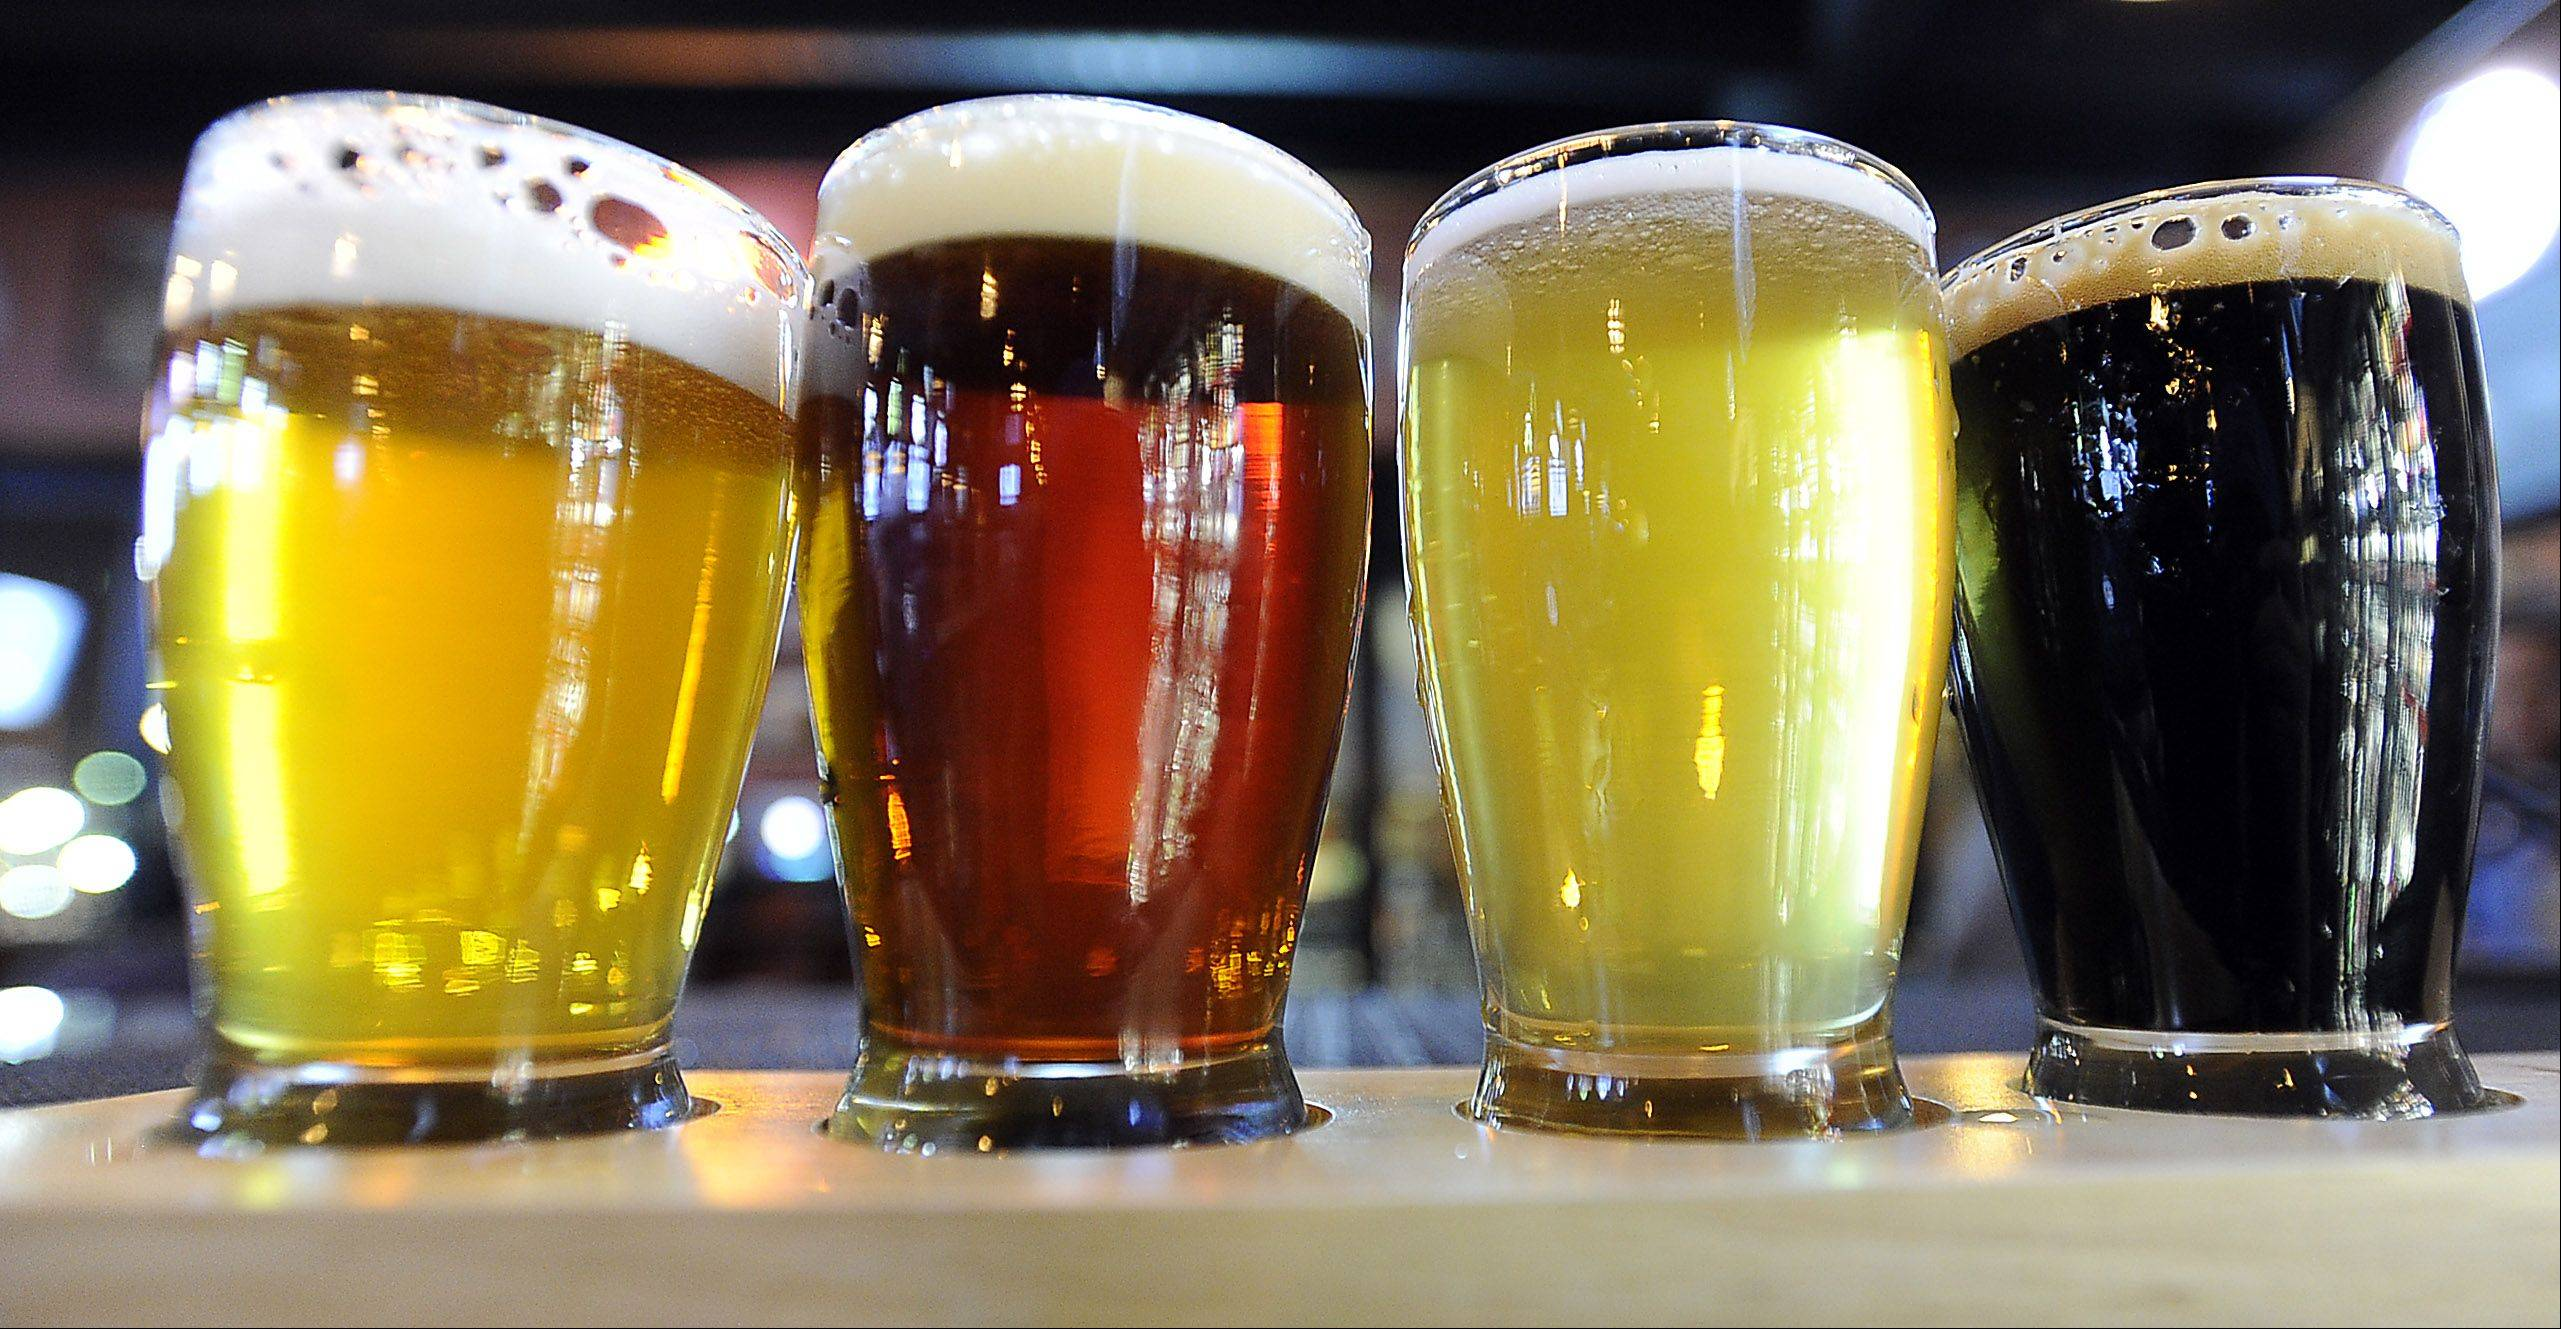 The Beer Market in Schaumburg's beer paddle allows a bit of sampling.